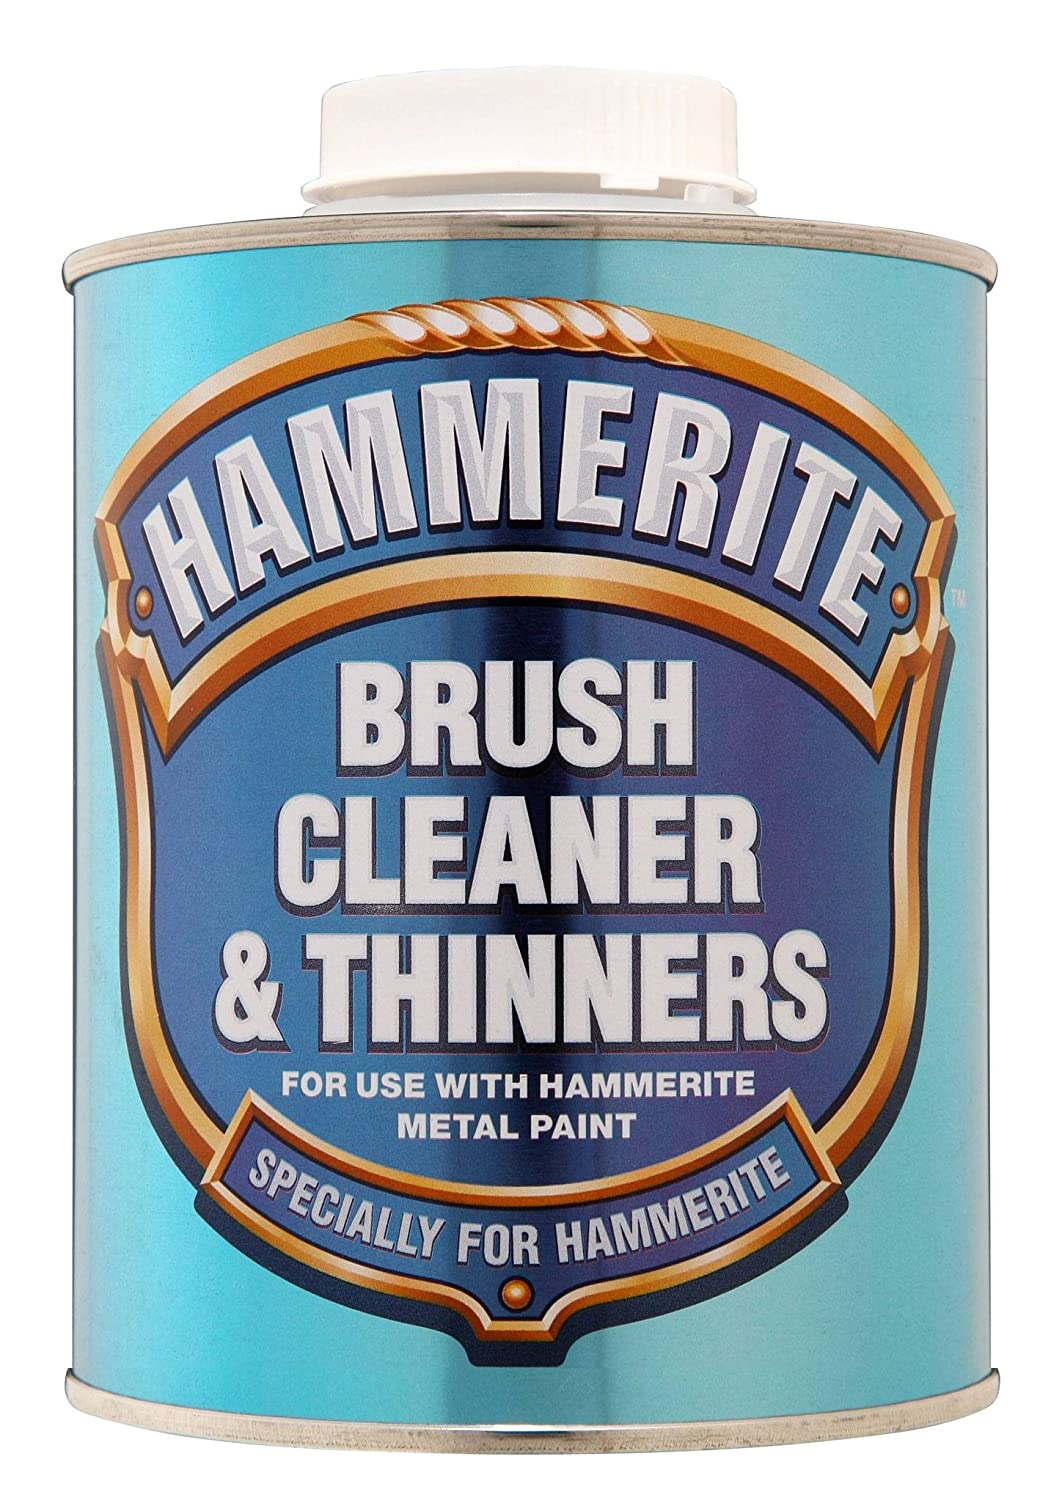 Hammerite HAM6721501 250ml Brush Cleaner and Thinners HAMRITE 5084918 B0032NBY3O